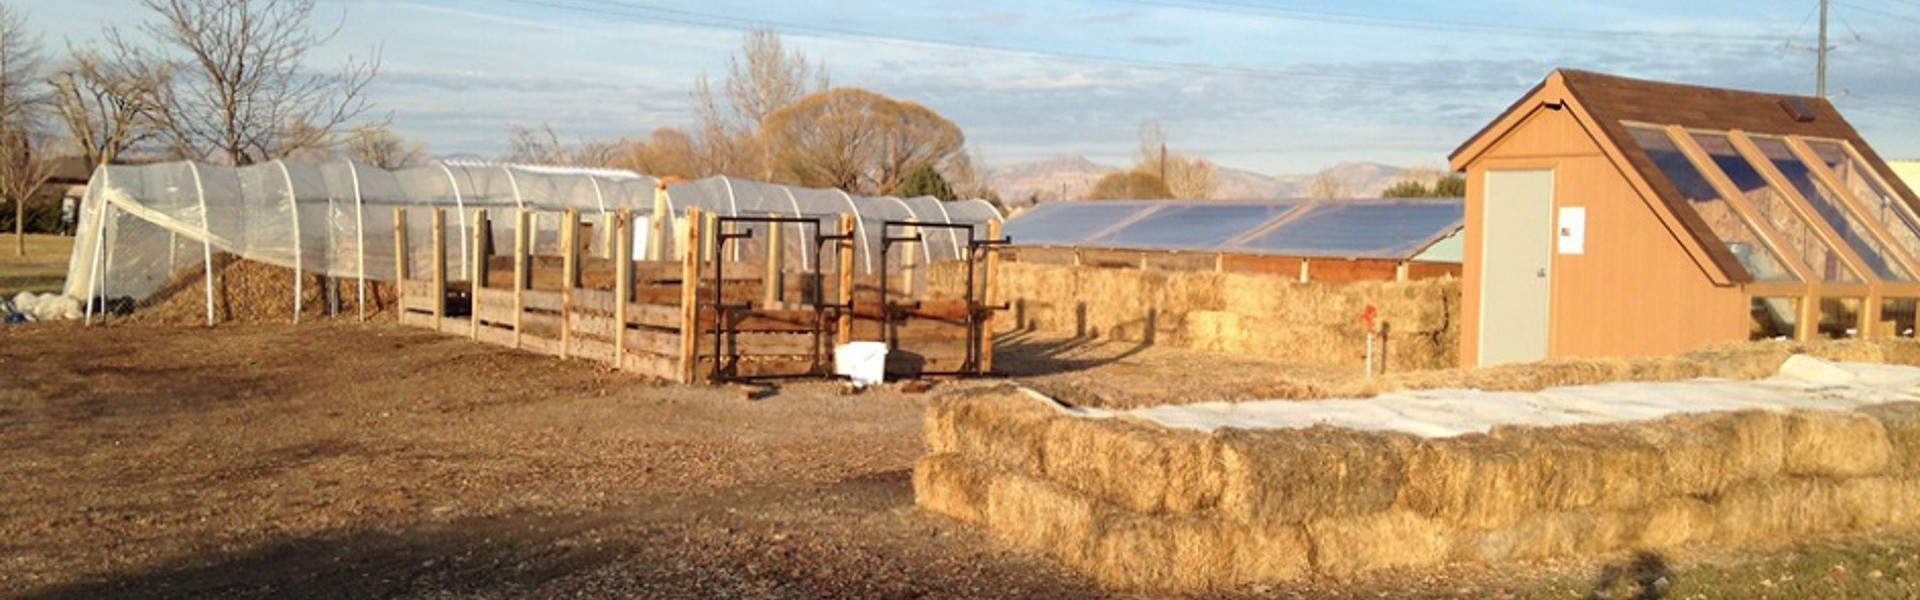 Grand Junction Composting Site Slider